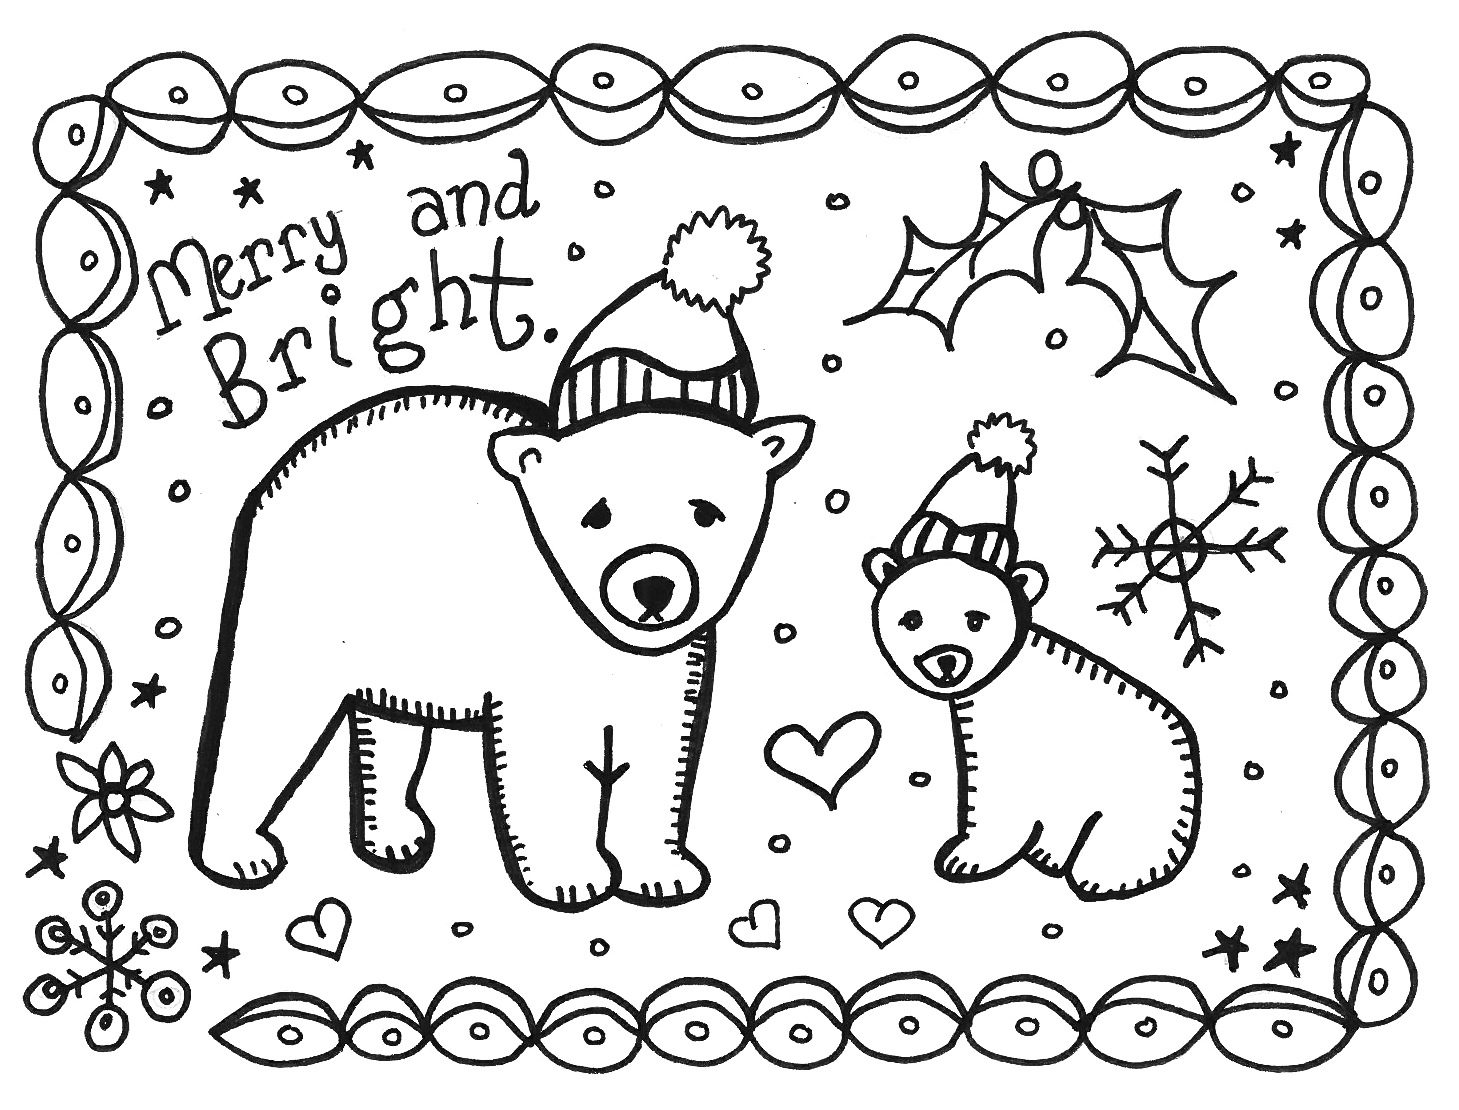 Print And Color This Card To Give - Marcia Beckett - Make A Holiday Card For Free Printable